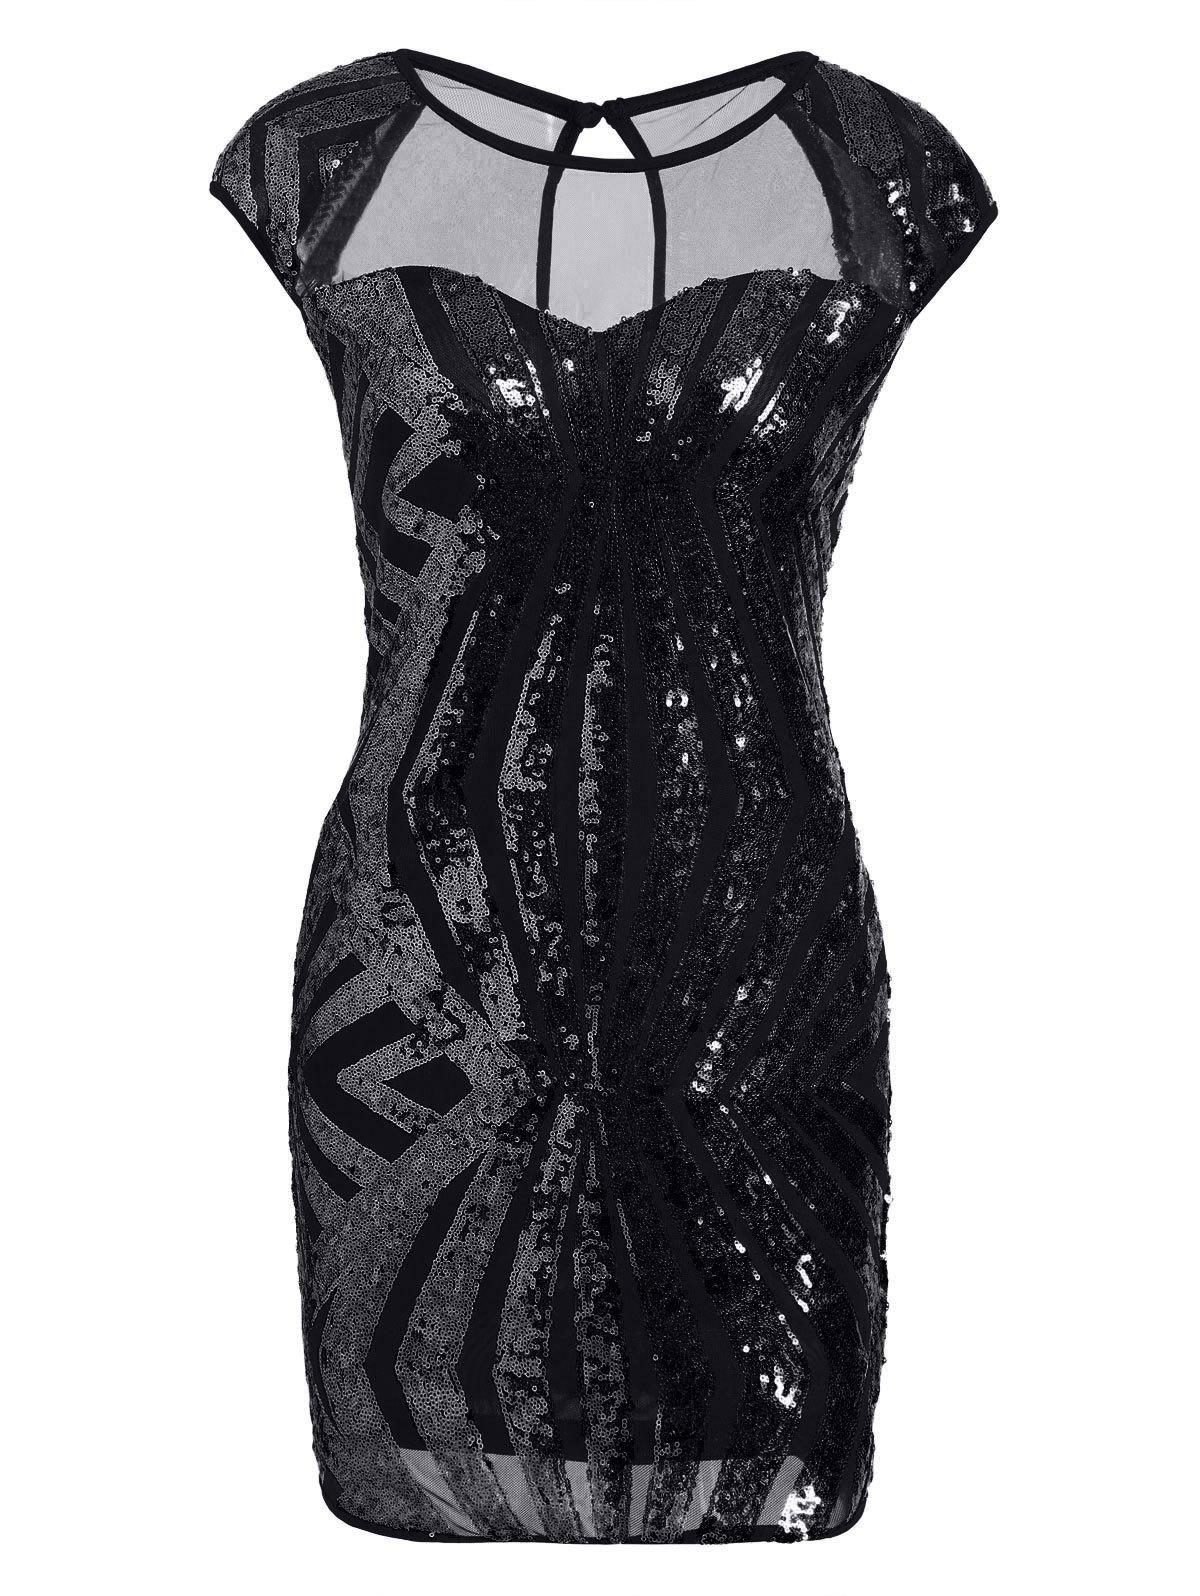 Maillot de poche Sequin Bodycon Club Dress - Noir S